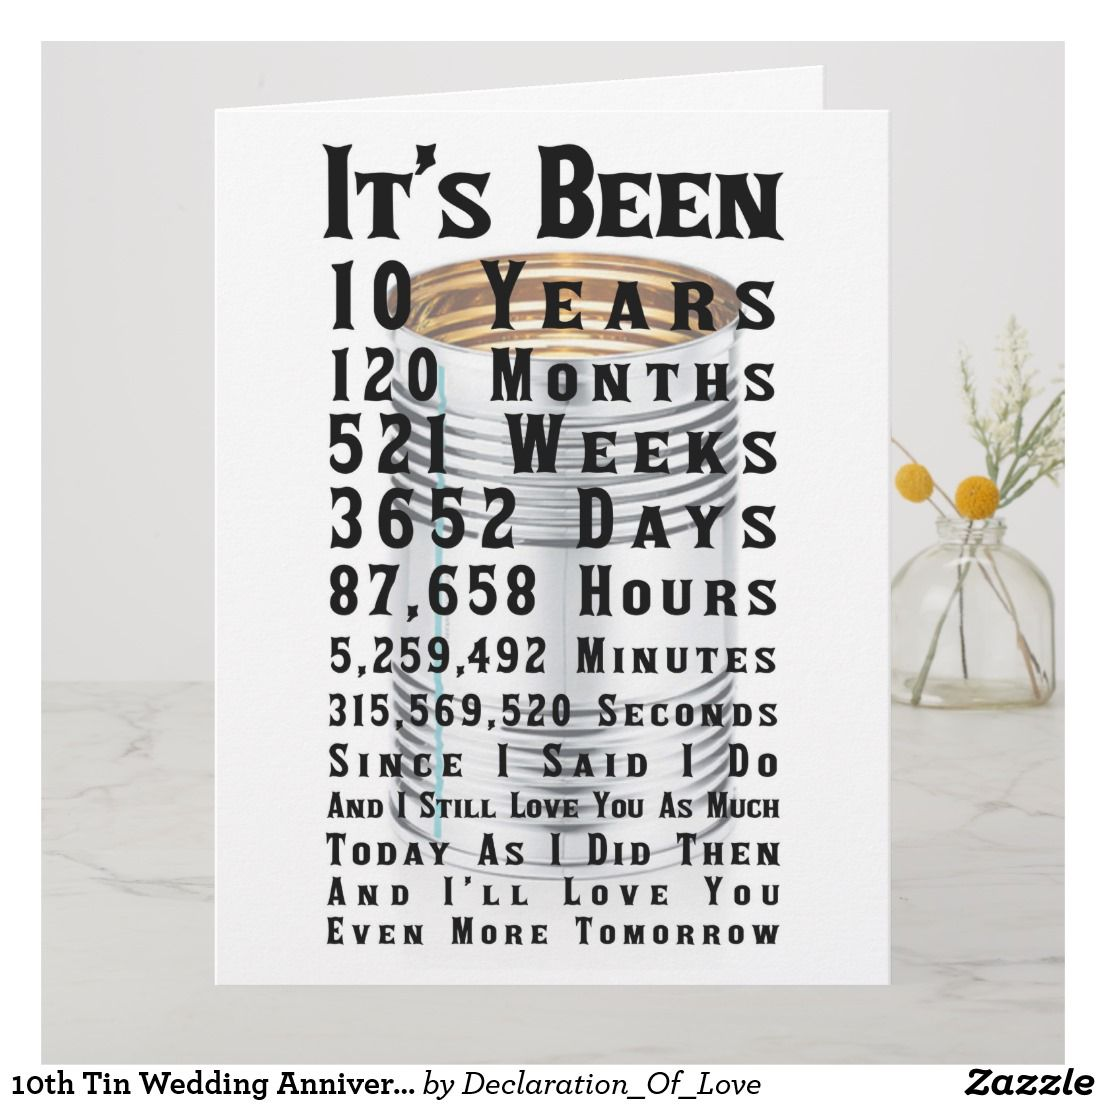 10th Tin Wedding Anniversary Card Zazzle.co.uk